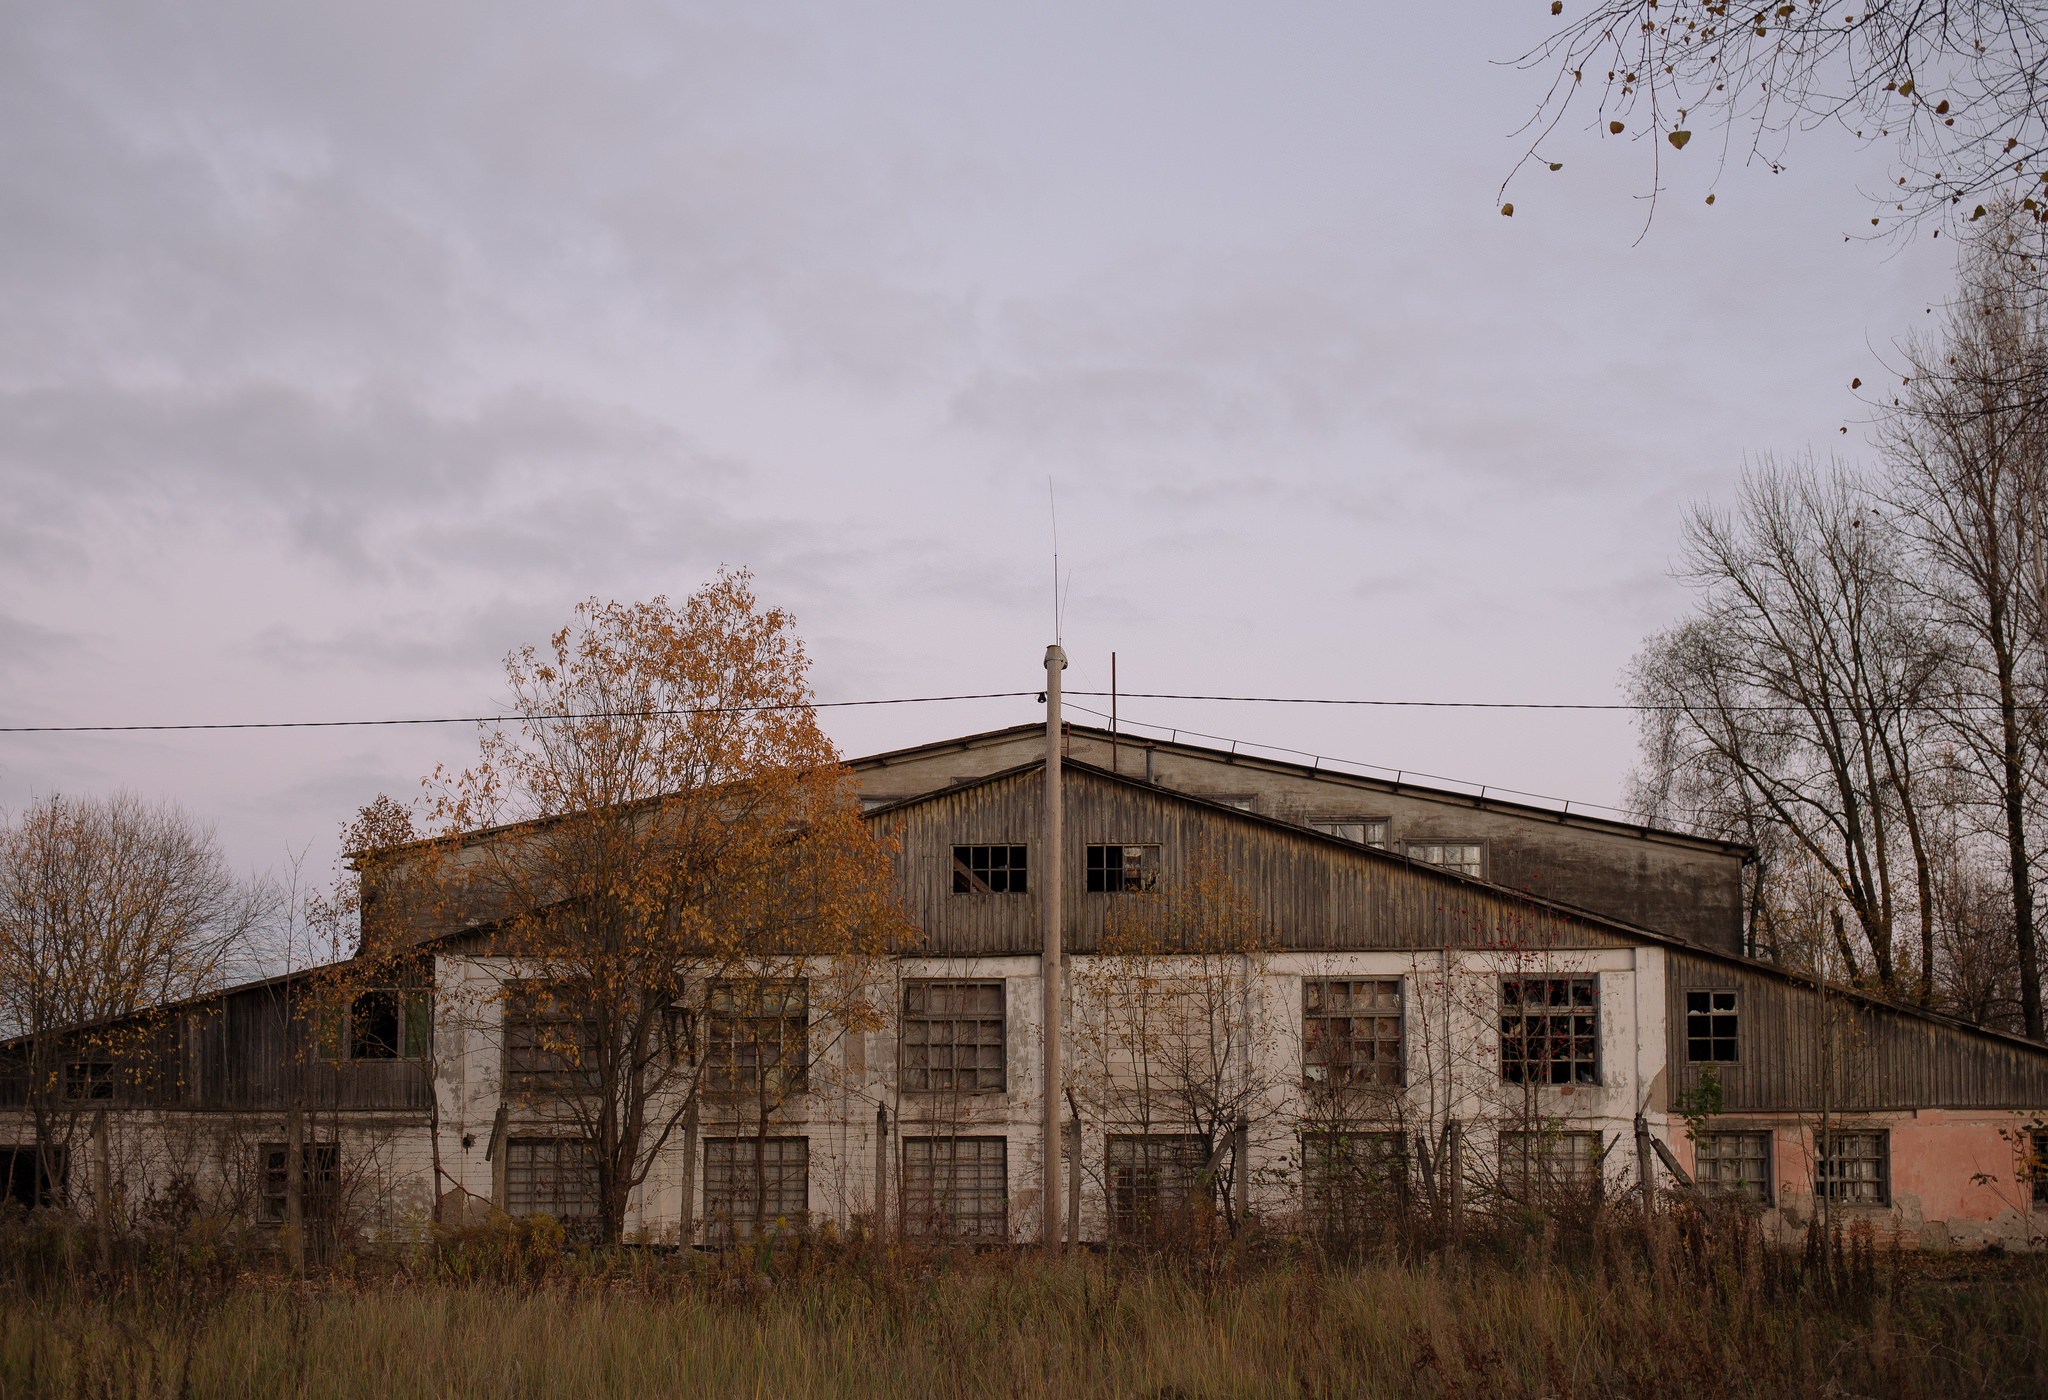 Soon to be demolished Soviet military architecture in Tartu, Estonia. October 2014.